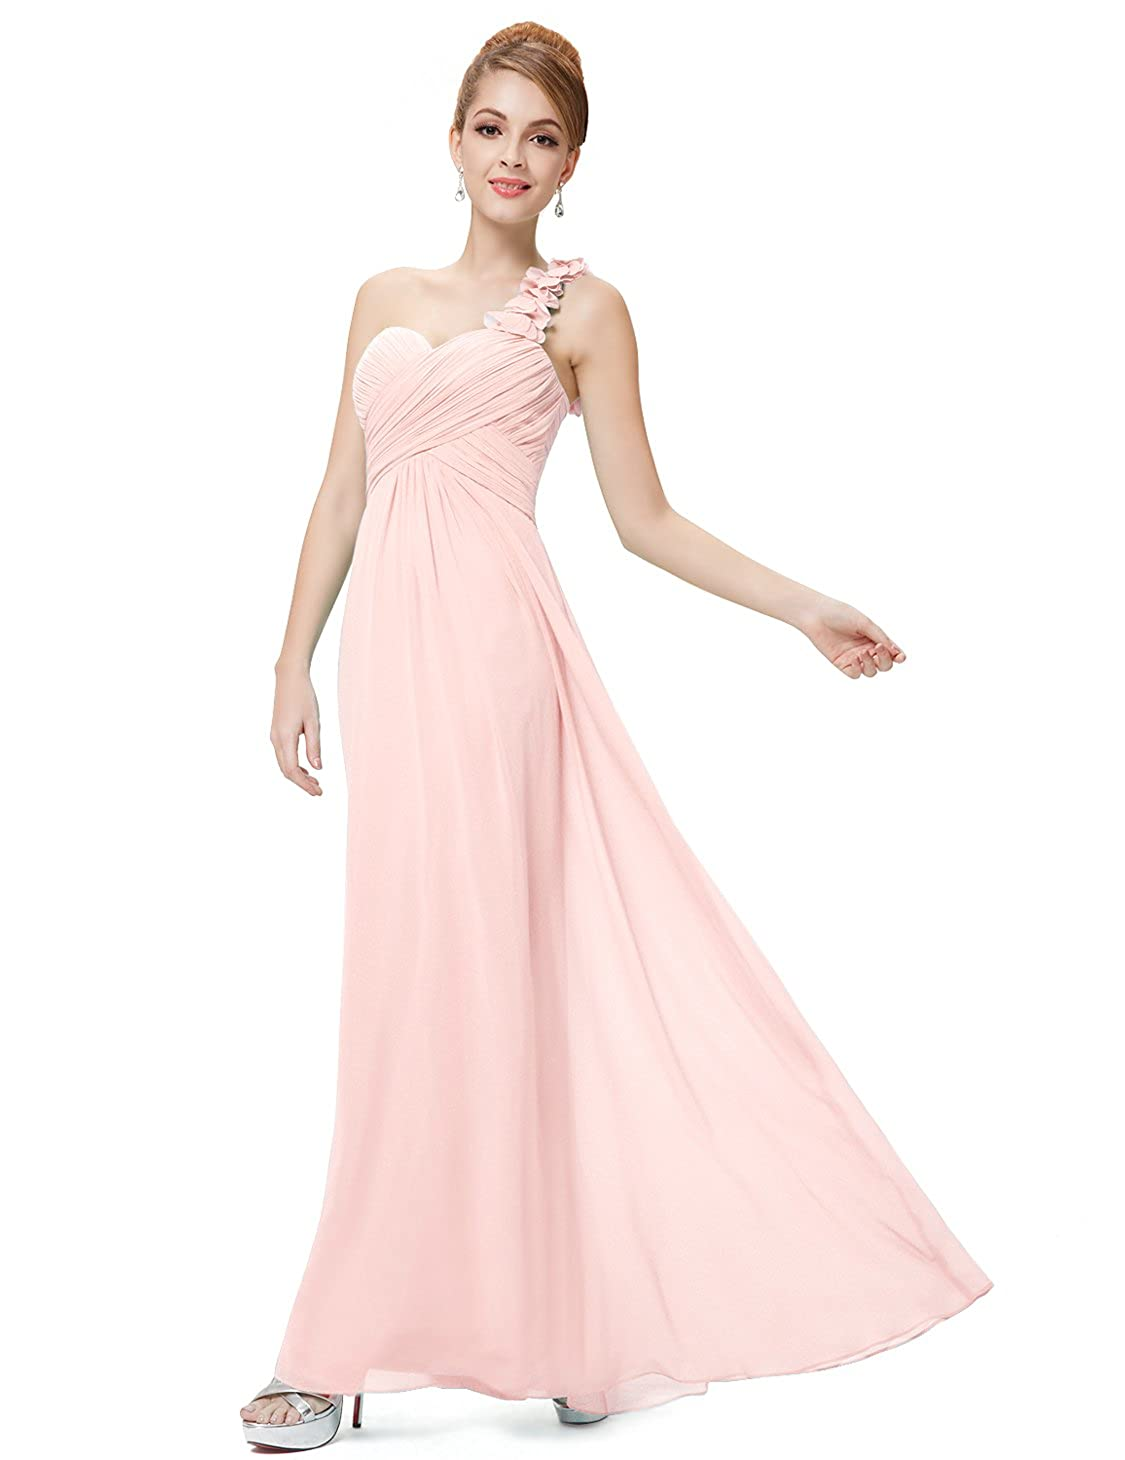 5f5a9222c Ever-Pretty Flower One Shoulder Empire Waist Floor Length Bridesmaids Dress  09768 at Amazon Women's Clothing store: